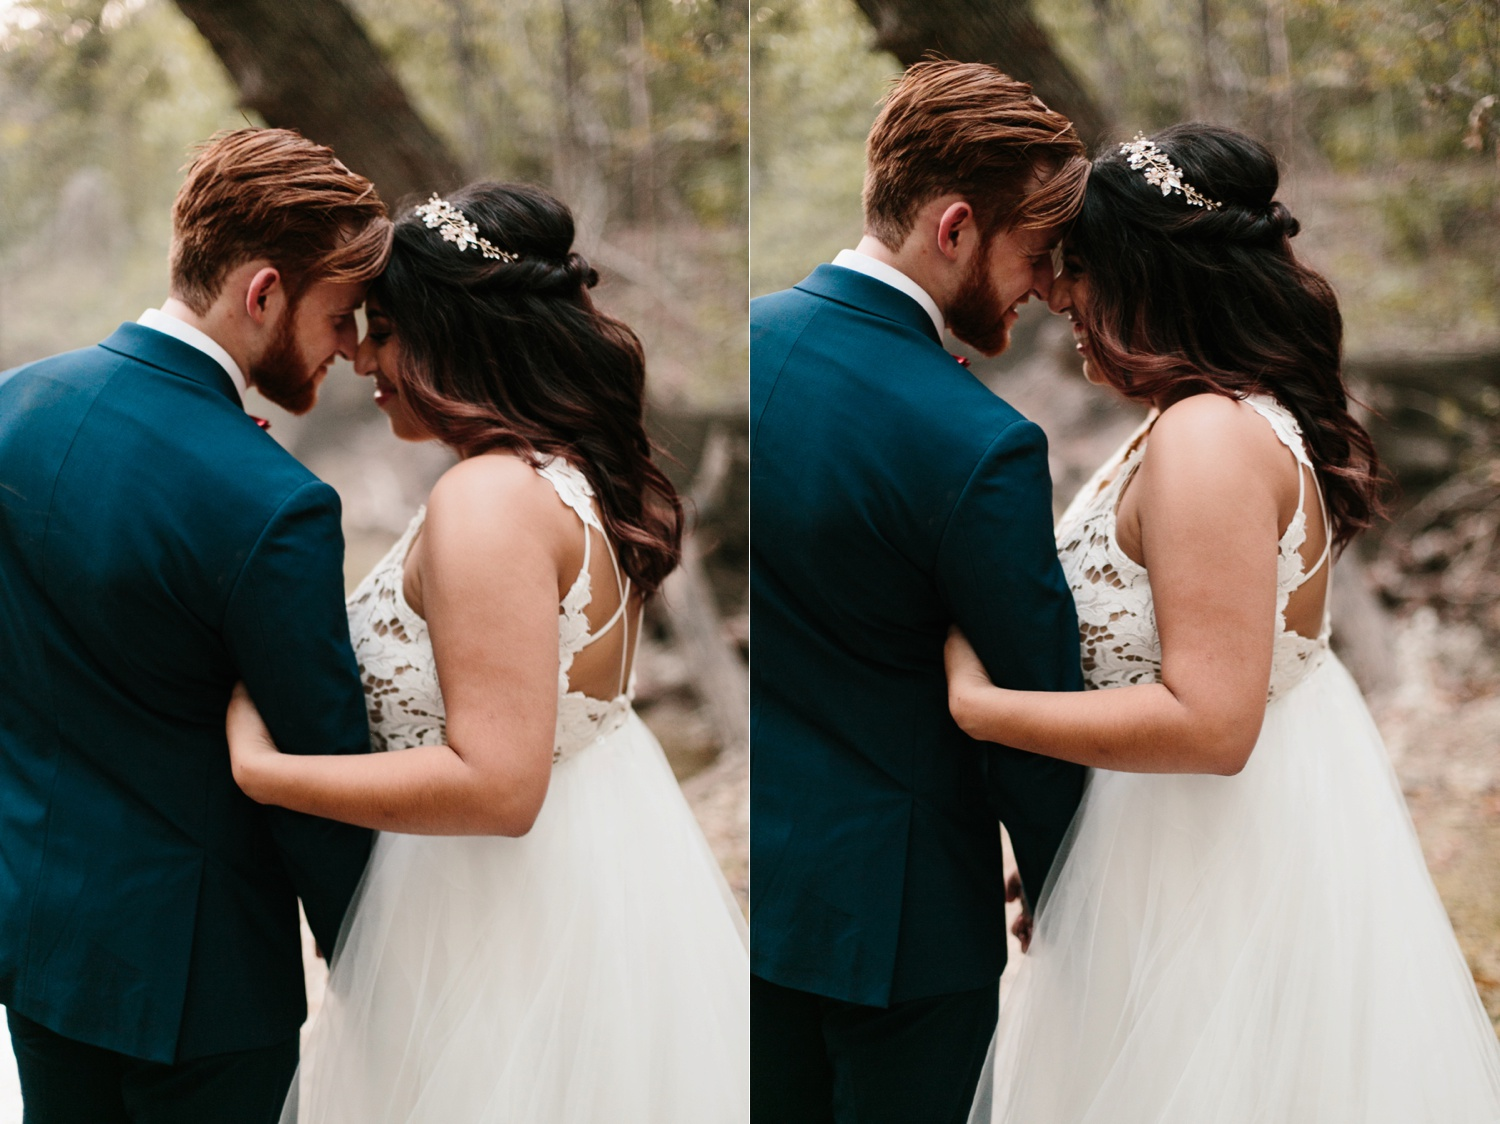 Grant + Lysette | a vibrant, deep burgundy and navy, and mixed metals wedding at Hidden Pines Chapel by North Texas Wedding Photographer Rachel Meagan Photography 265